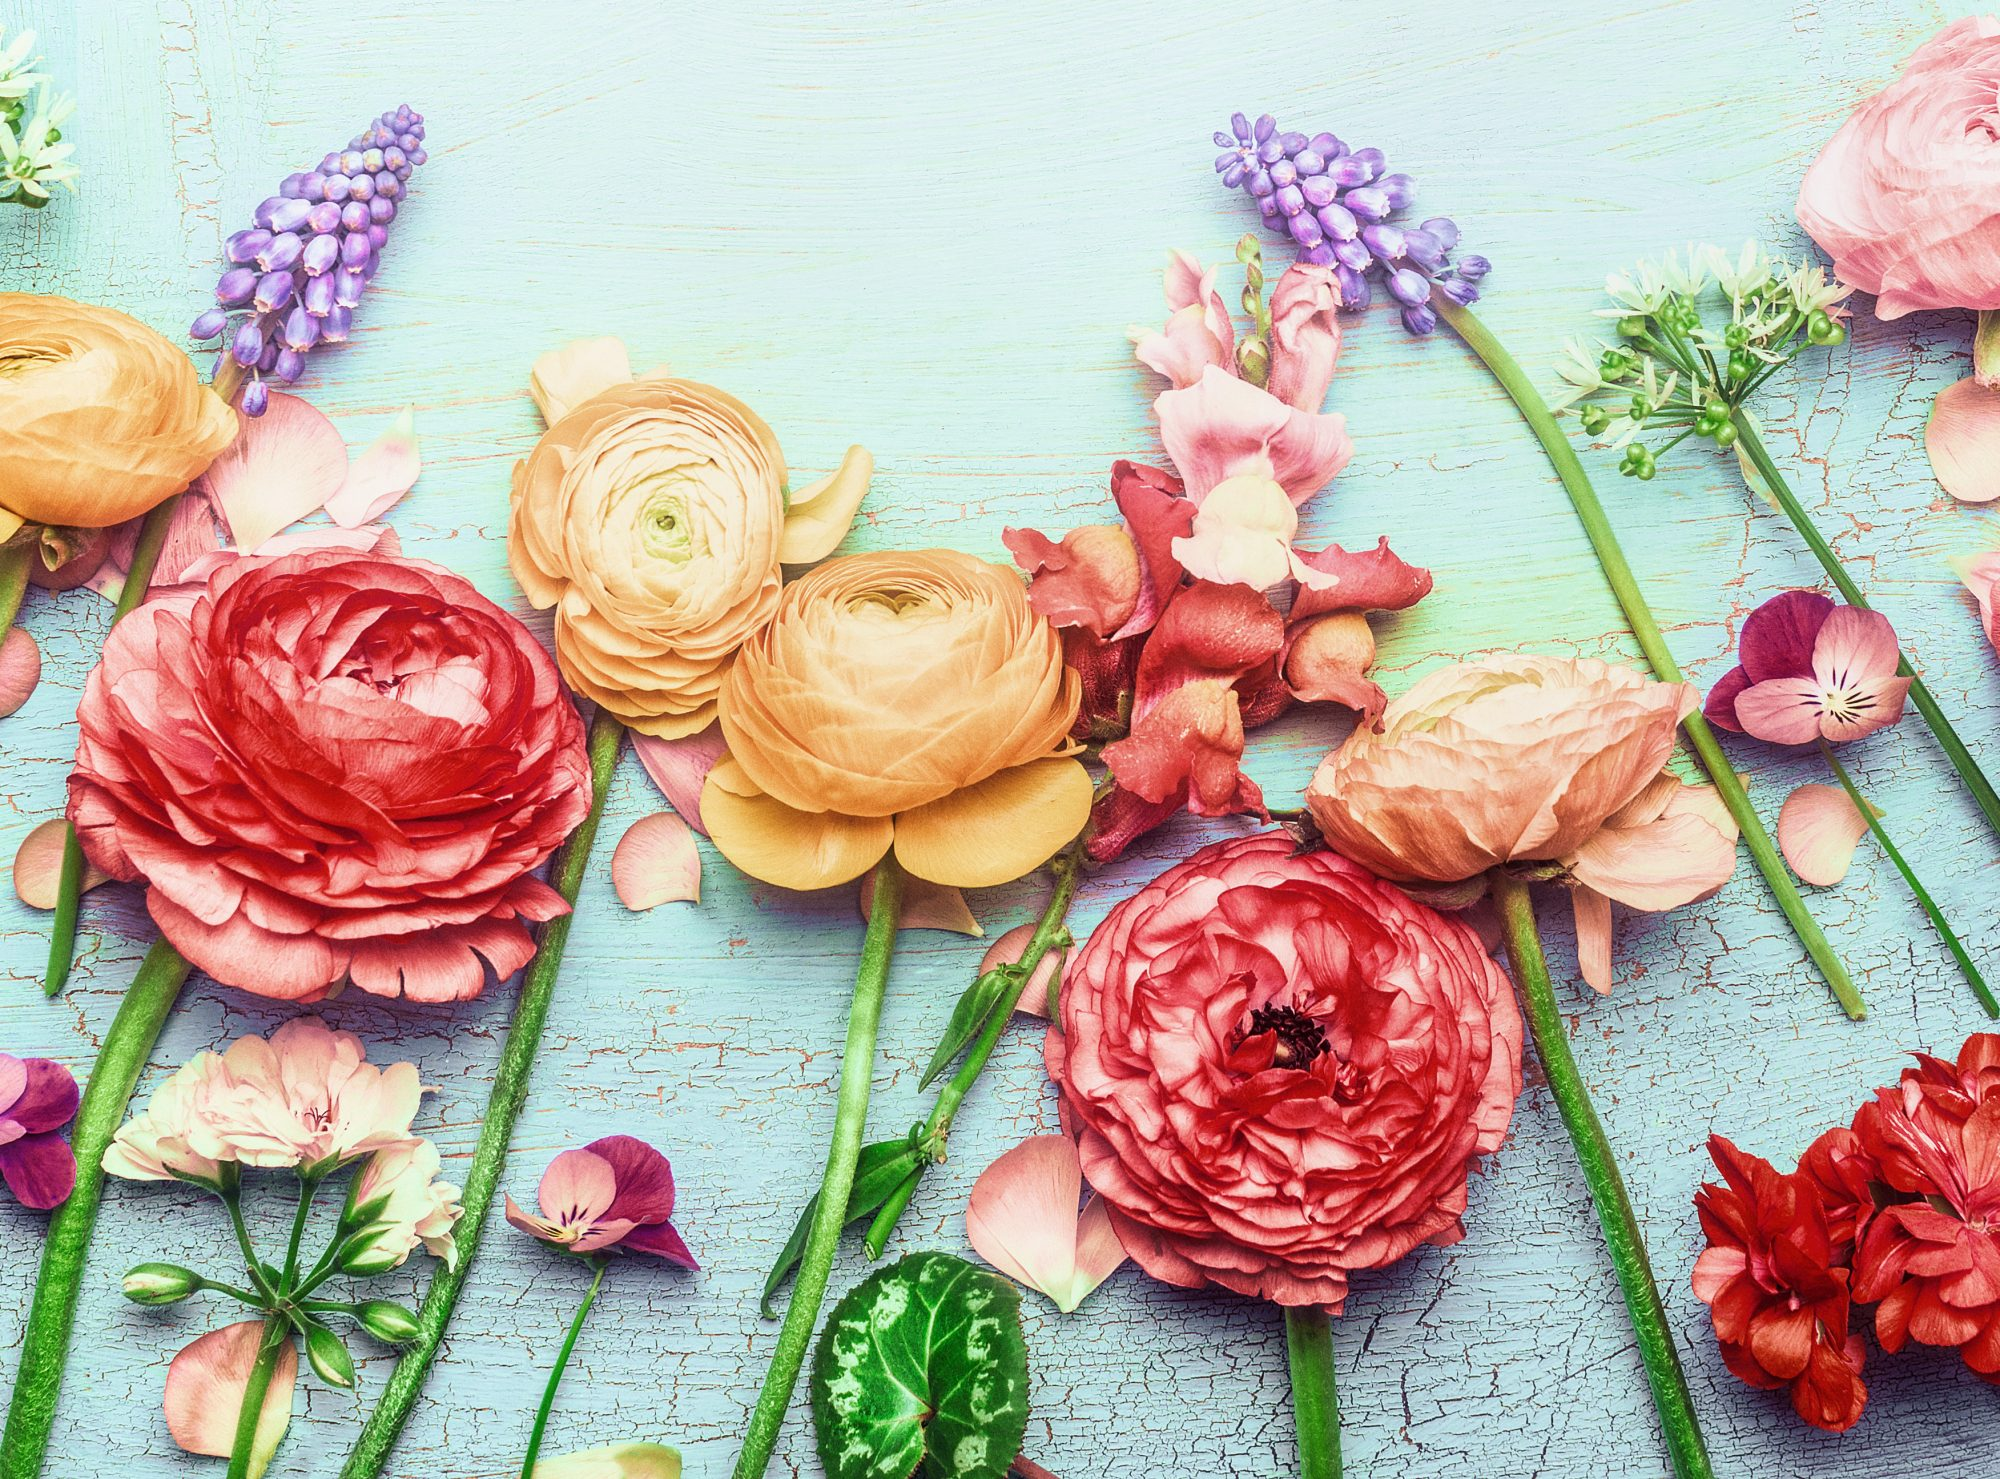 How to Arrange Flowers, pretty spring flowers